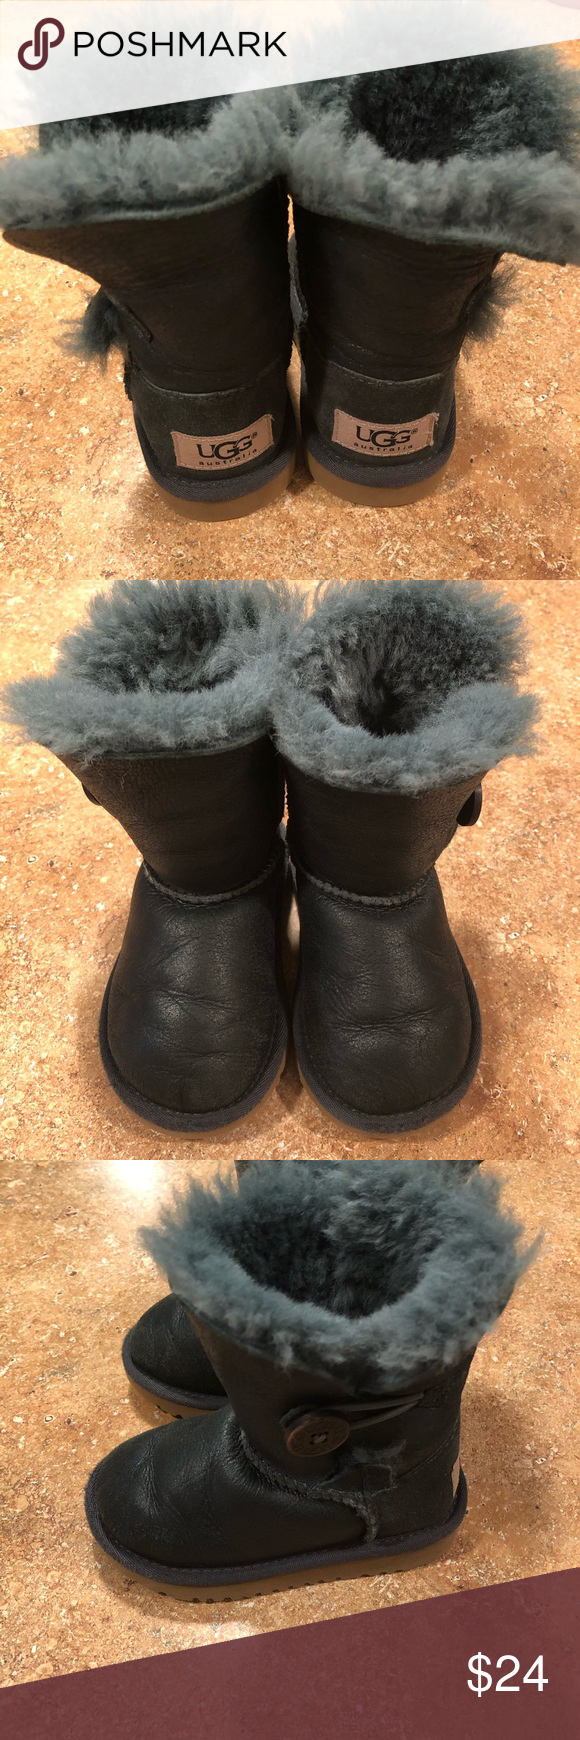 a05d562c058 Toddler ugg boots Size 7 used toddler ugg boots. Very pretty deep ...